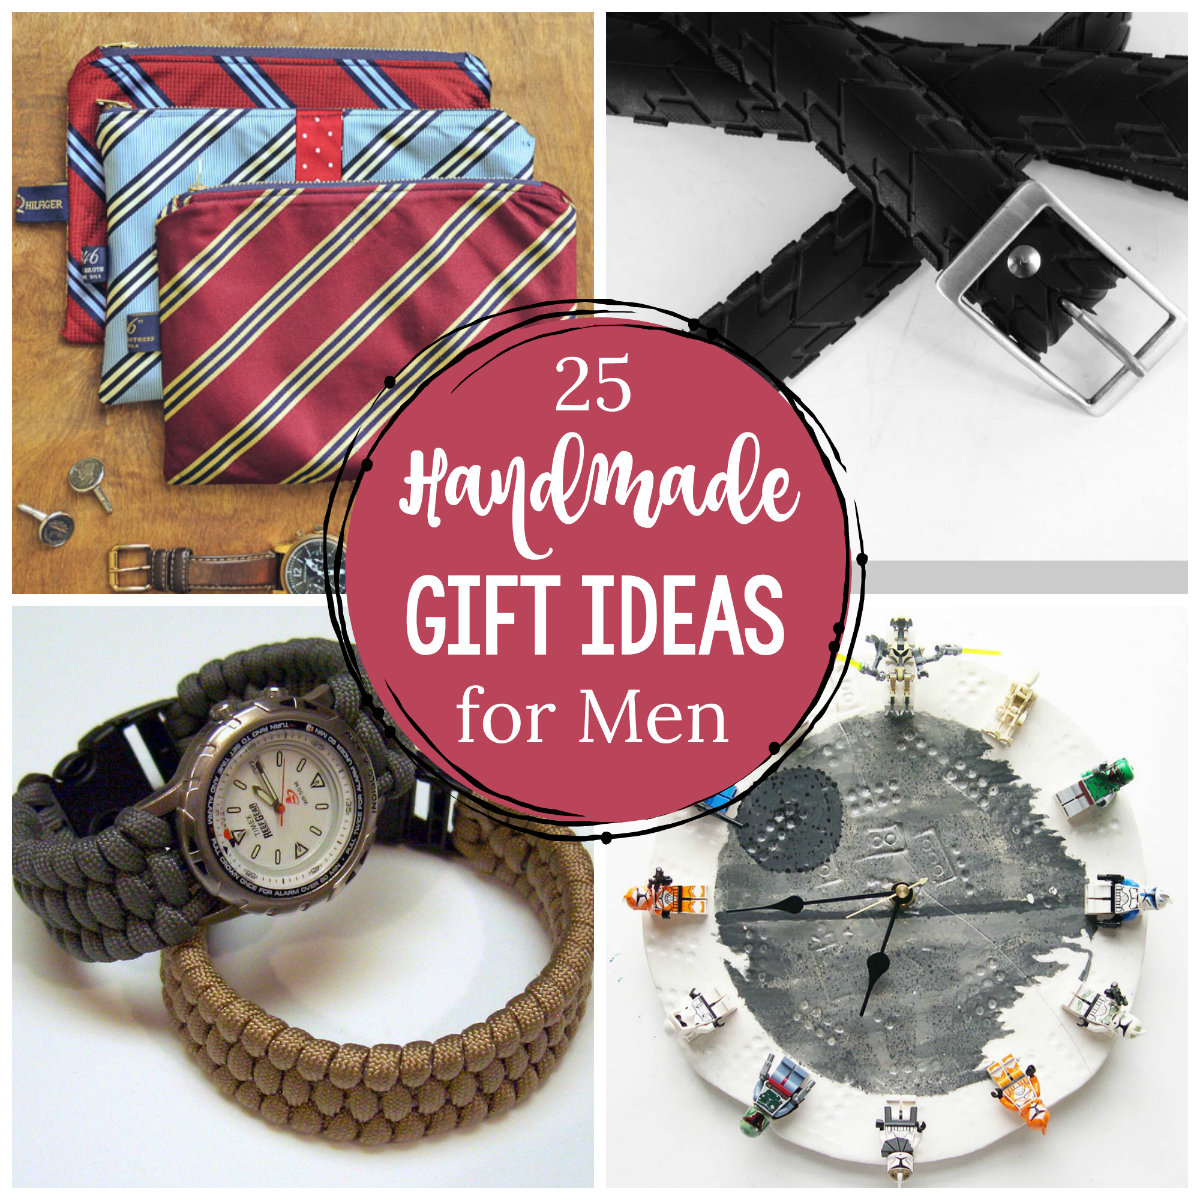 Handmade Gifts for Men